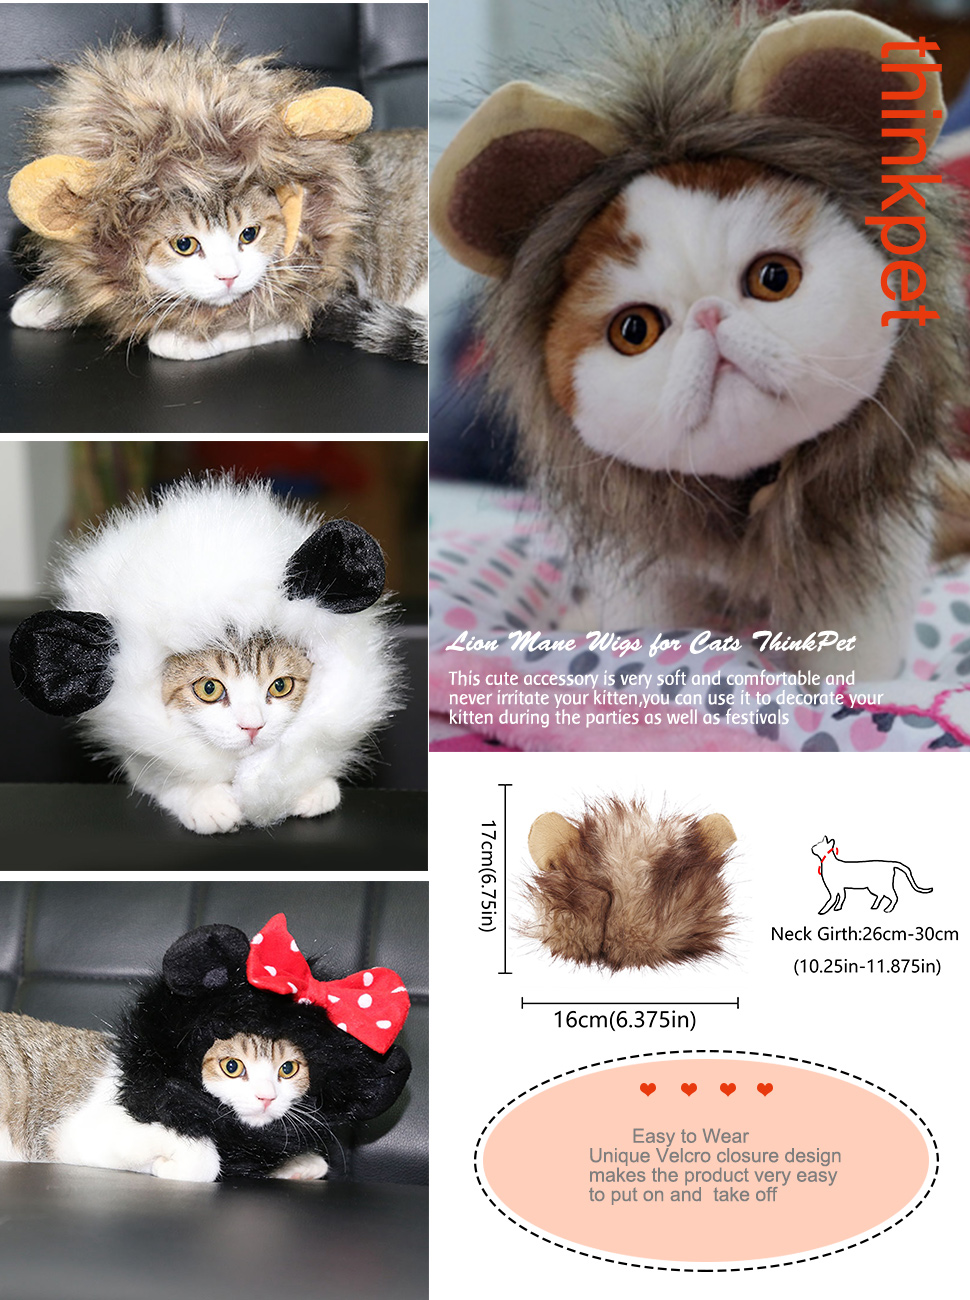 Mane Wigs Comfortable Party Festival Costume for Cats ThinkPet